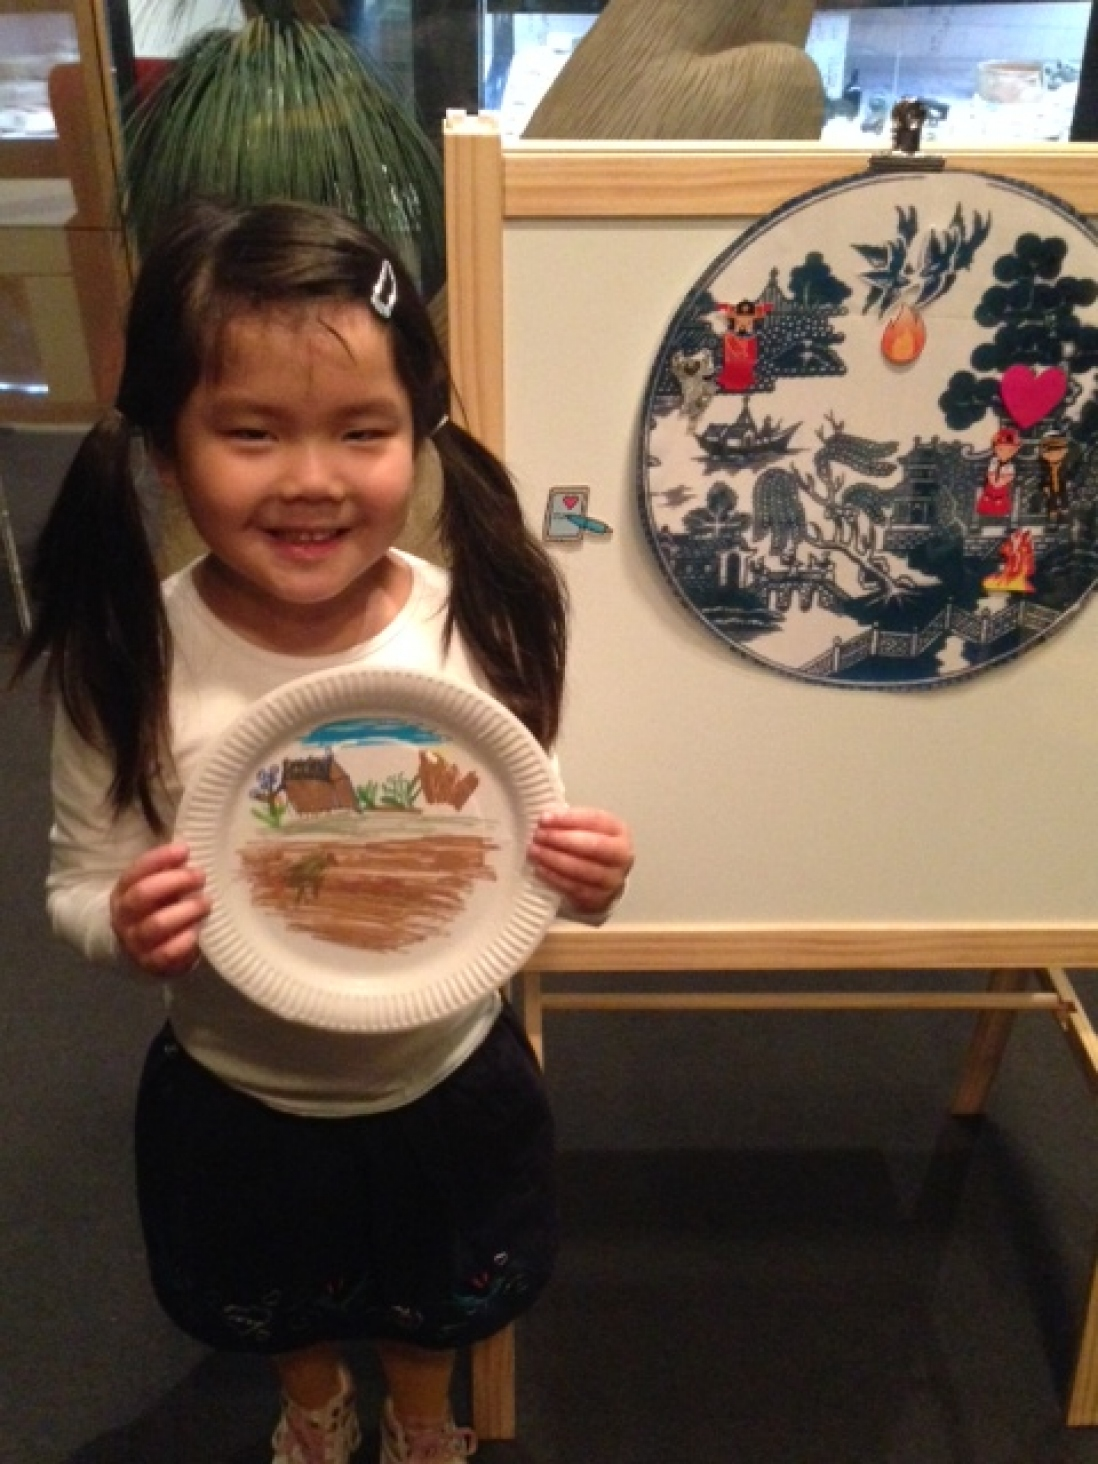 Young girl with pigtails holding up paper plate with colour design.